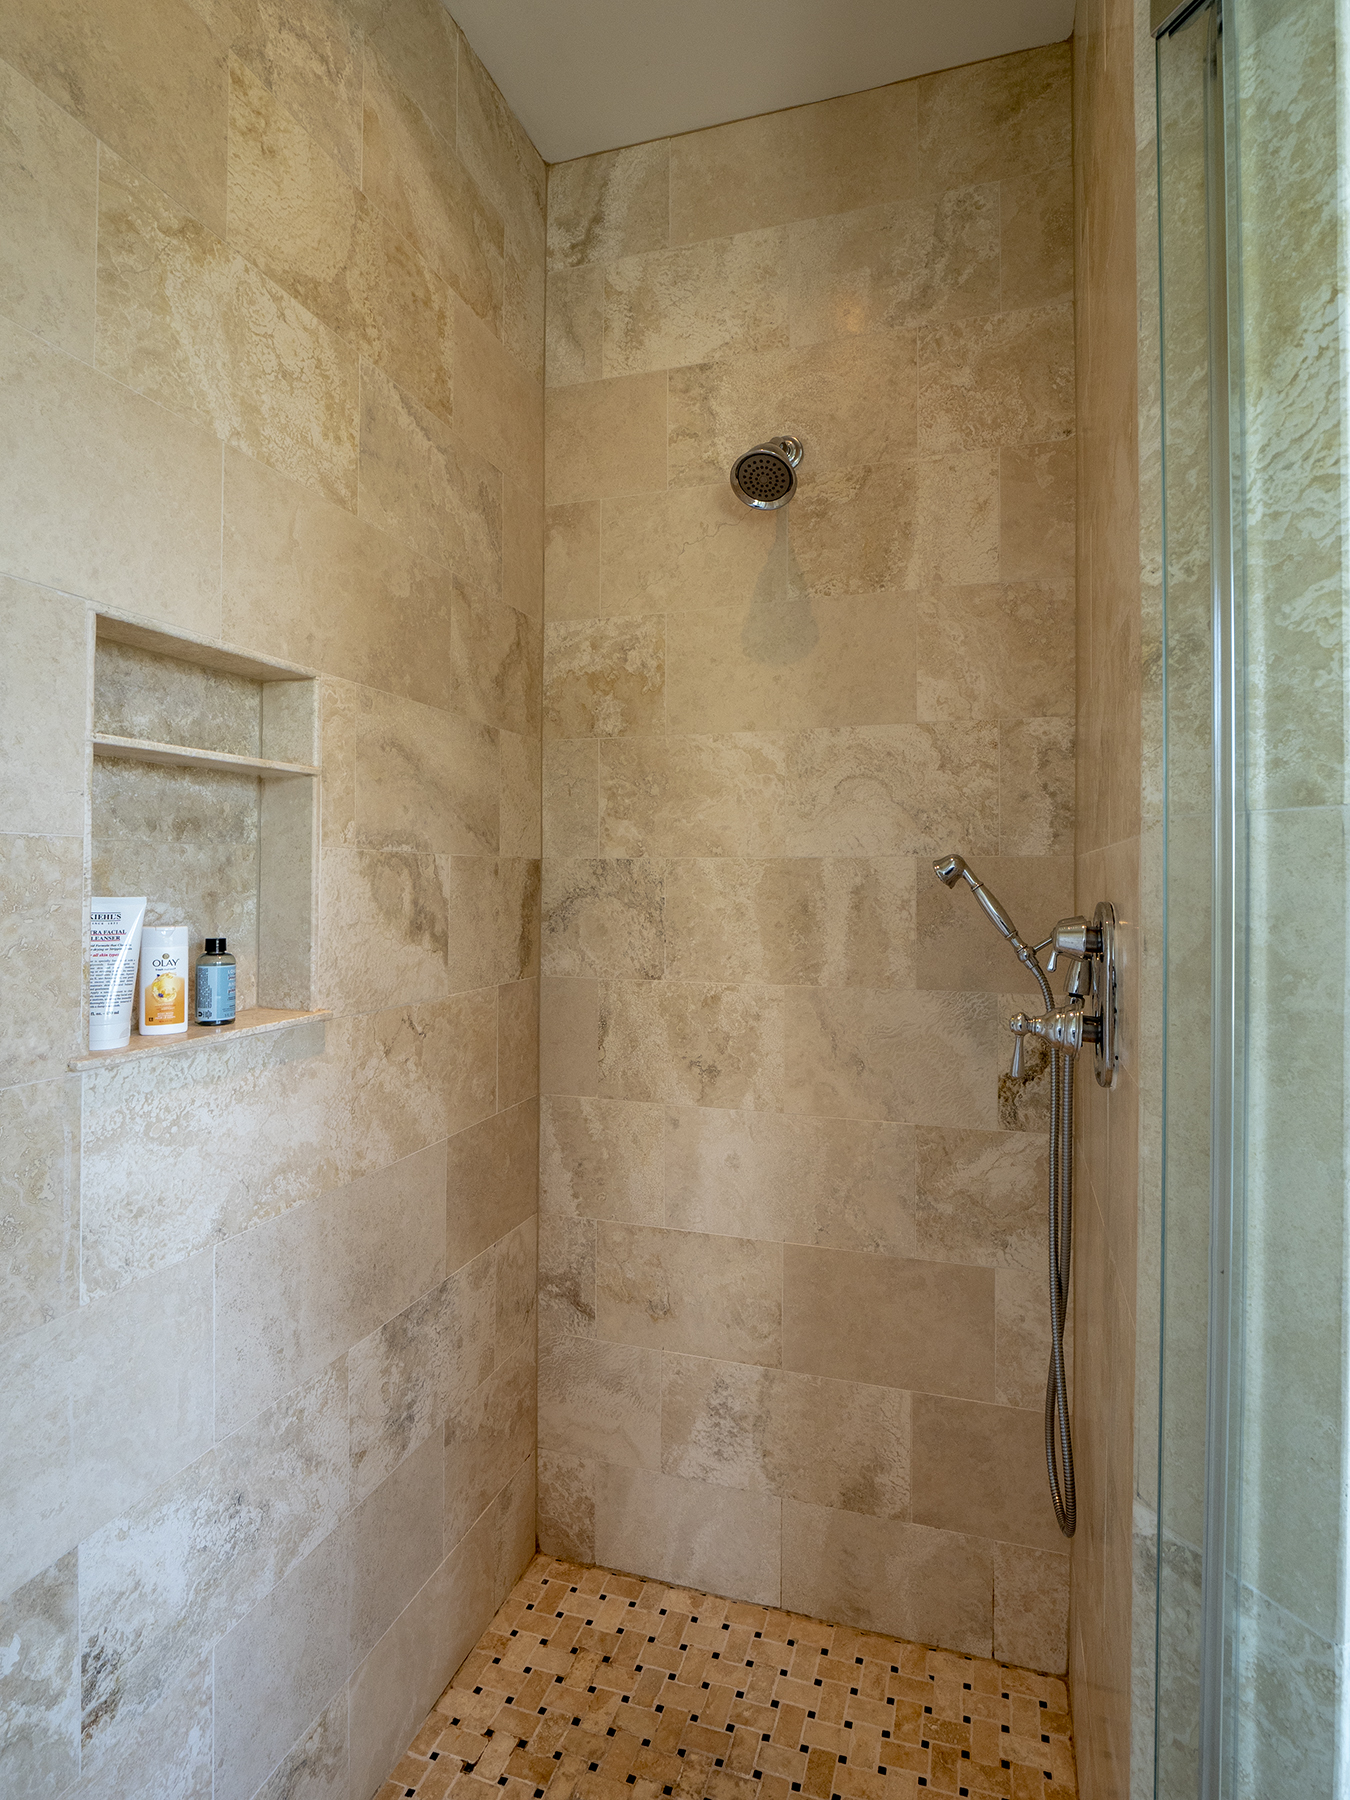 Beautiful tiles shower with hand held wand